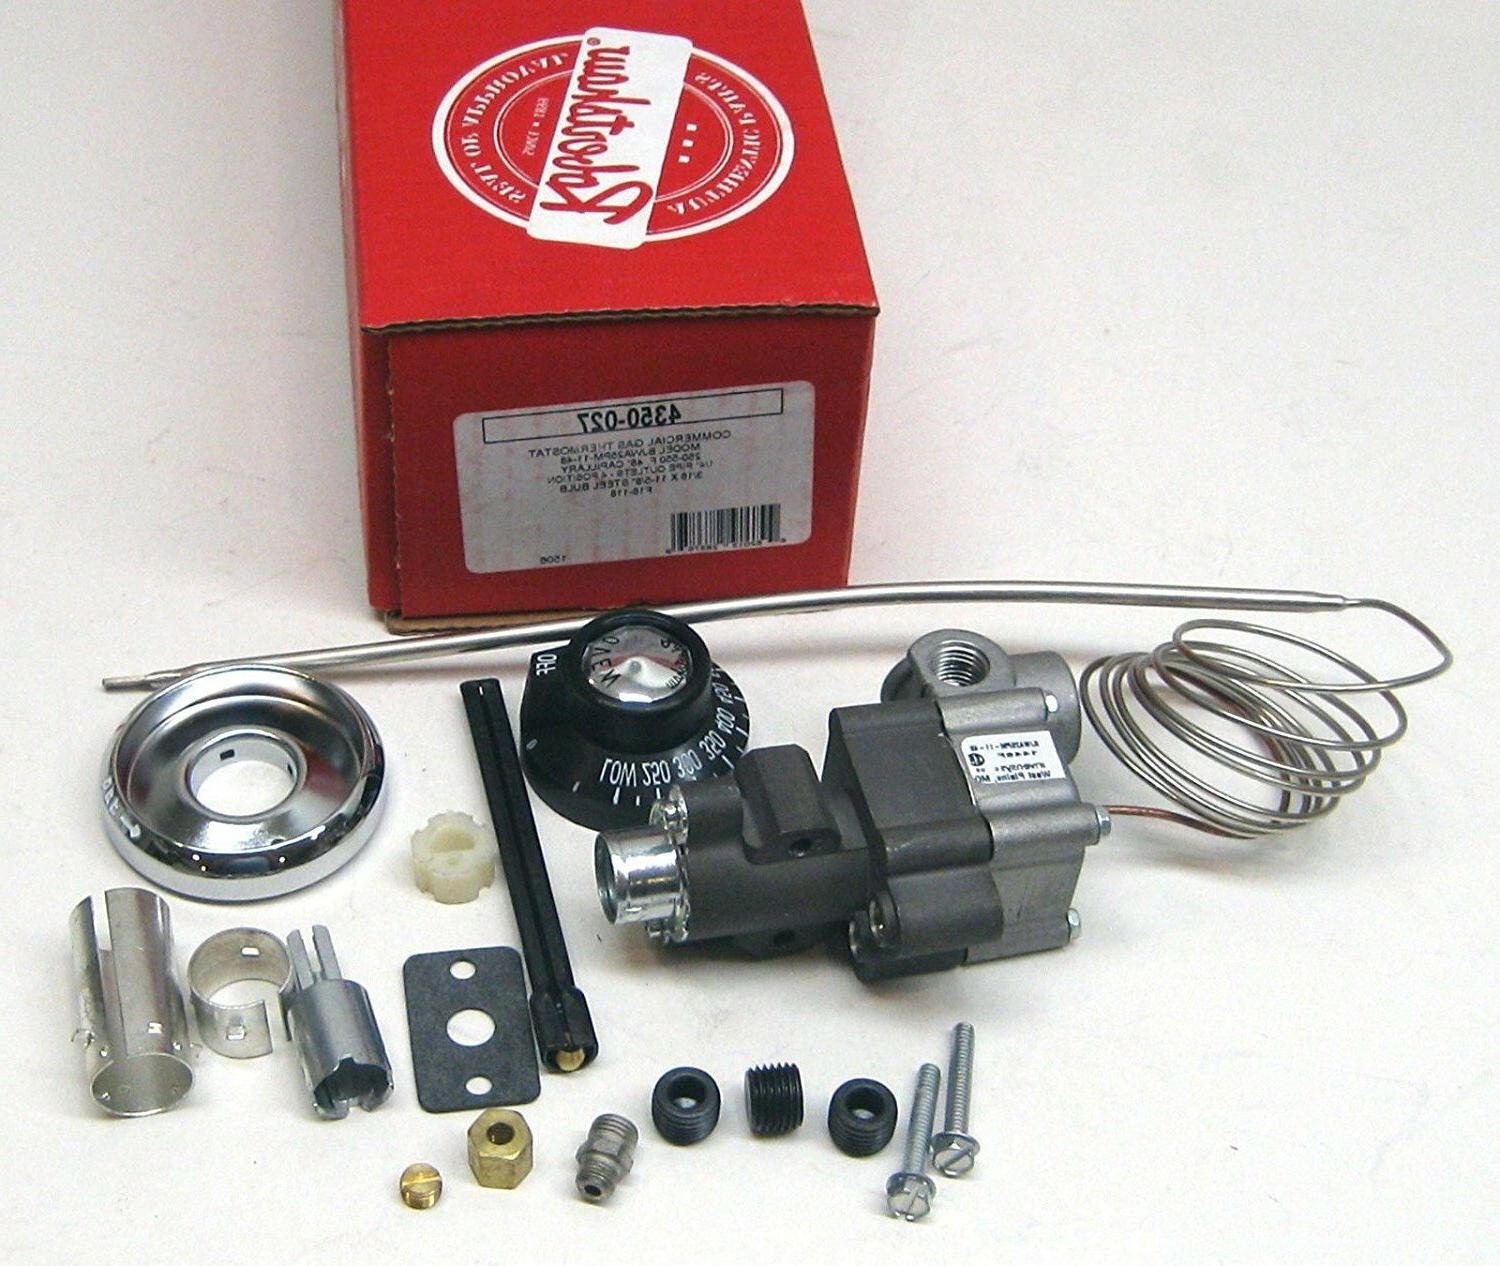 4350 027 commercial gas thermostat with dial